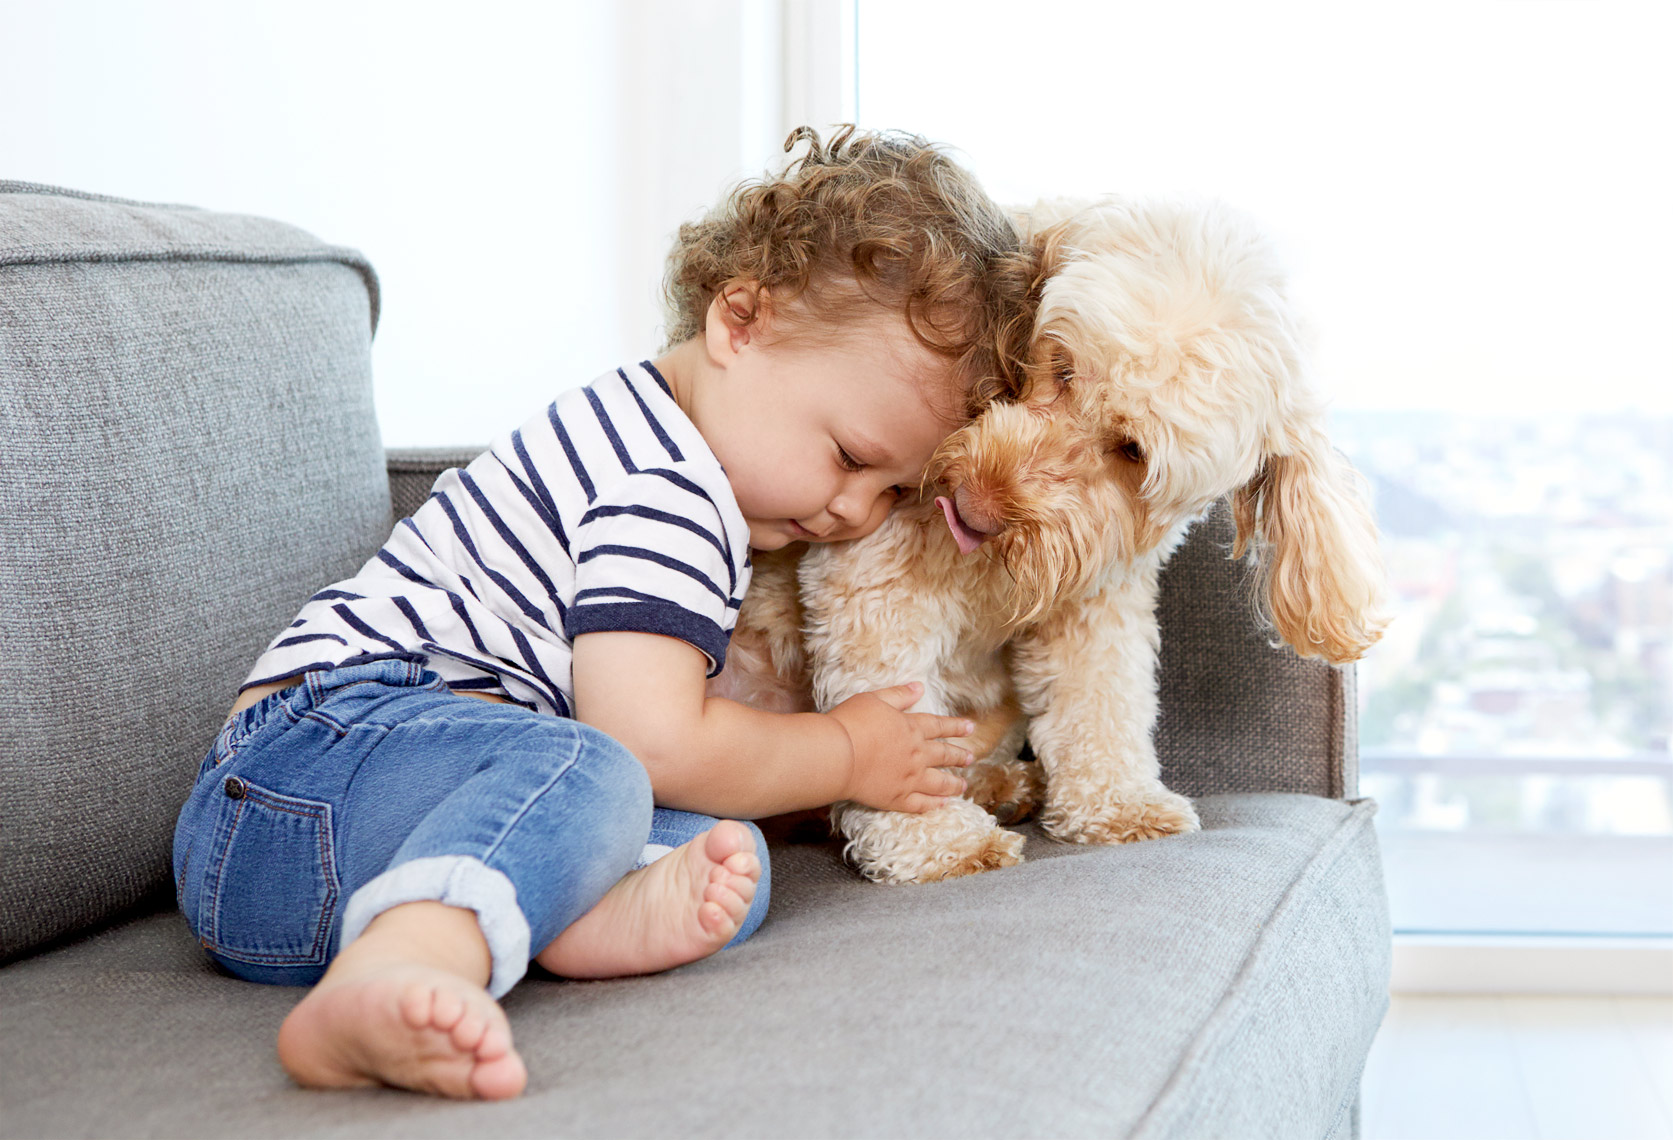 Toddler hugging dog